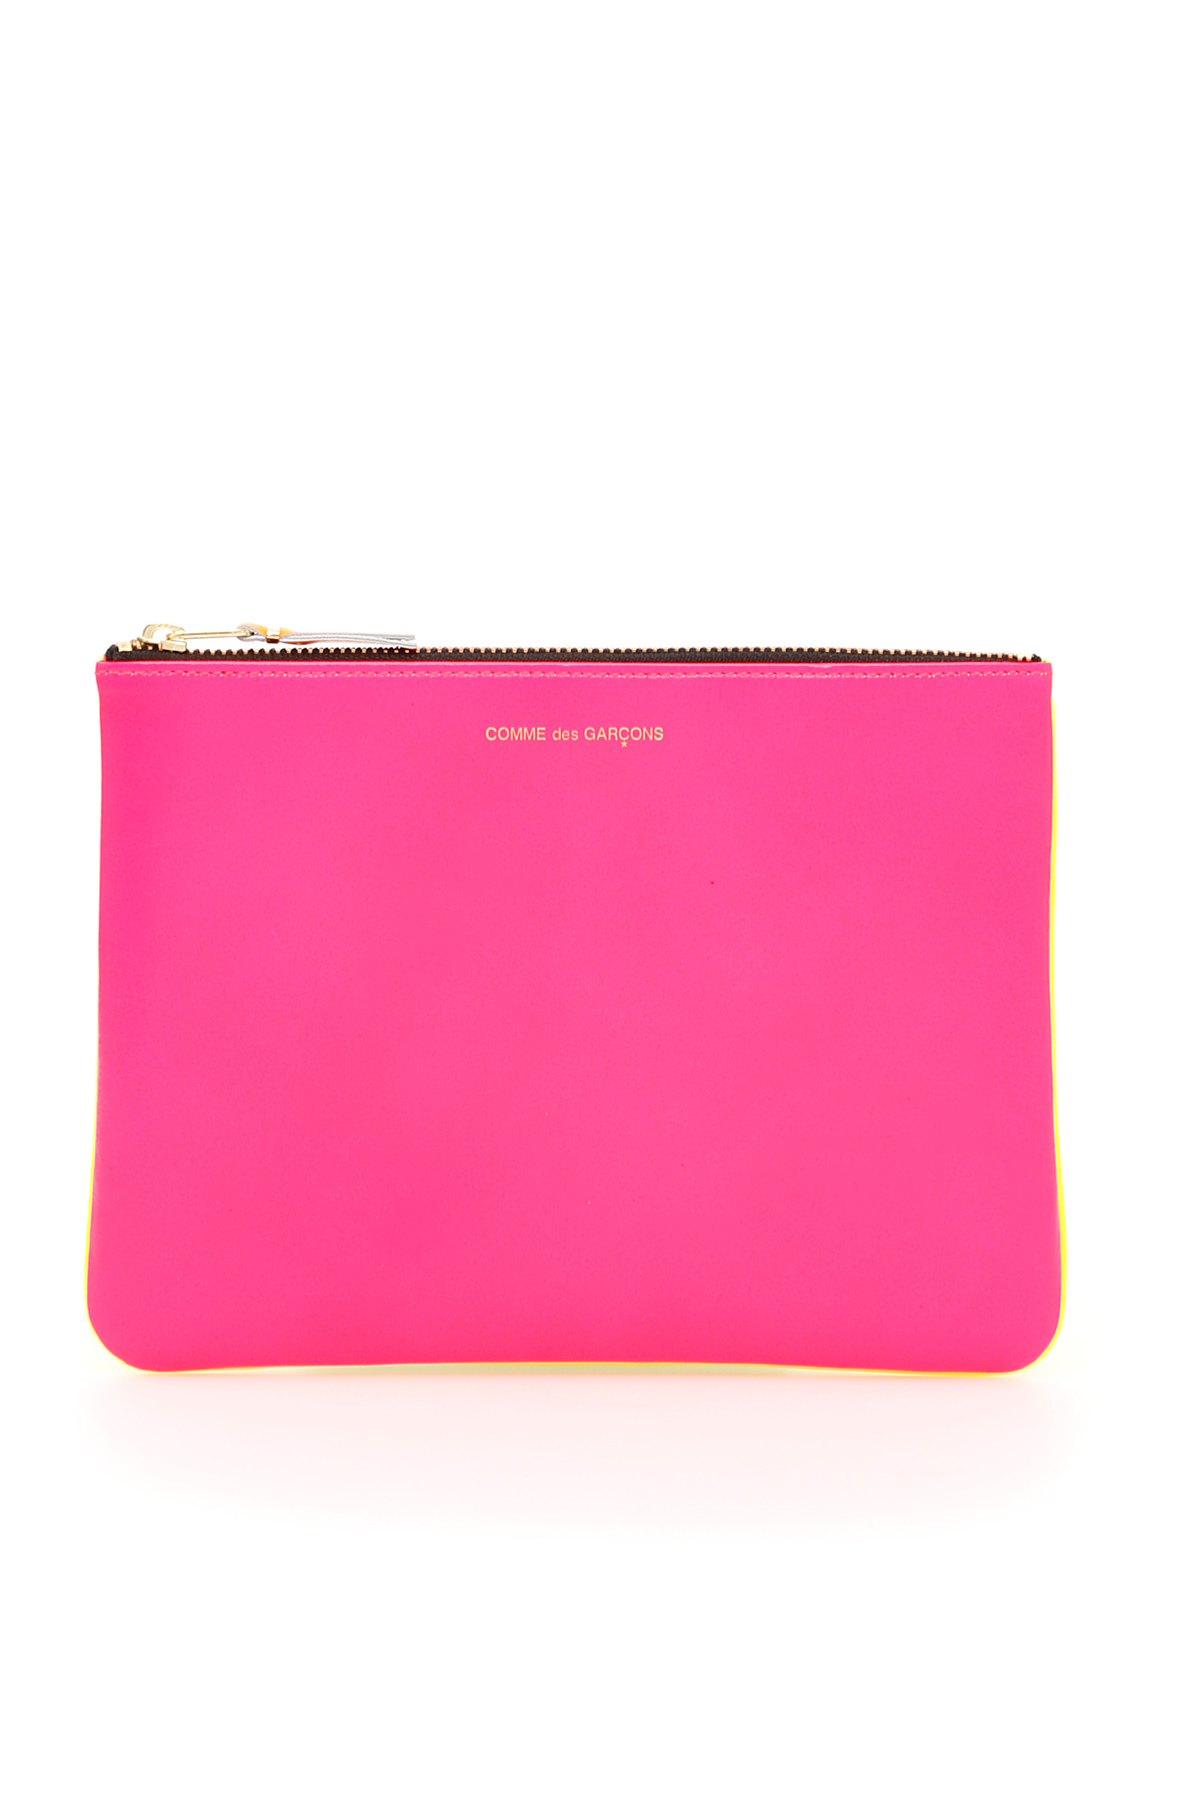 COMME DES GARCONS WALLET SUPER FLUO POUCH OS Fuchsia, Yellow Leather